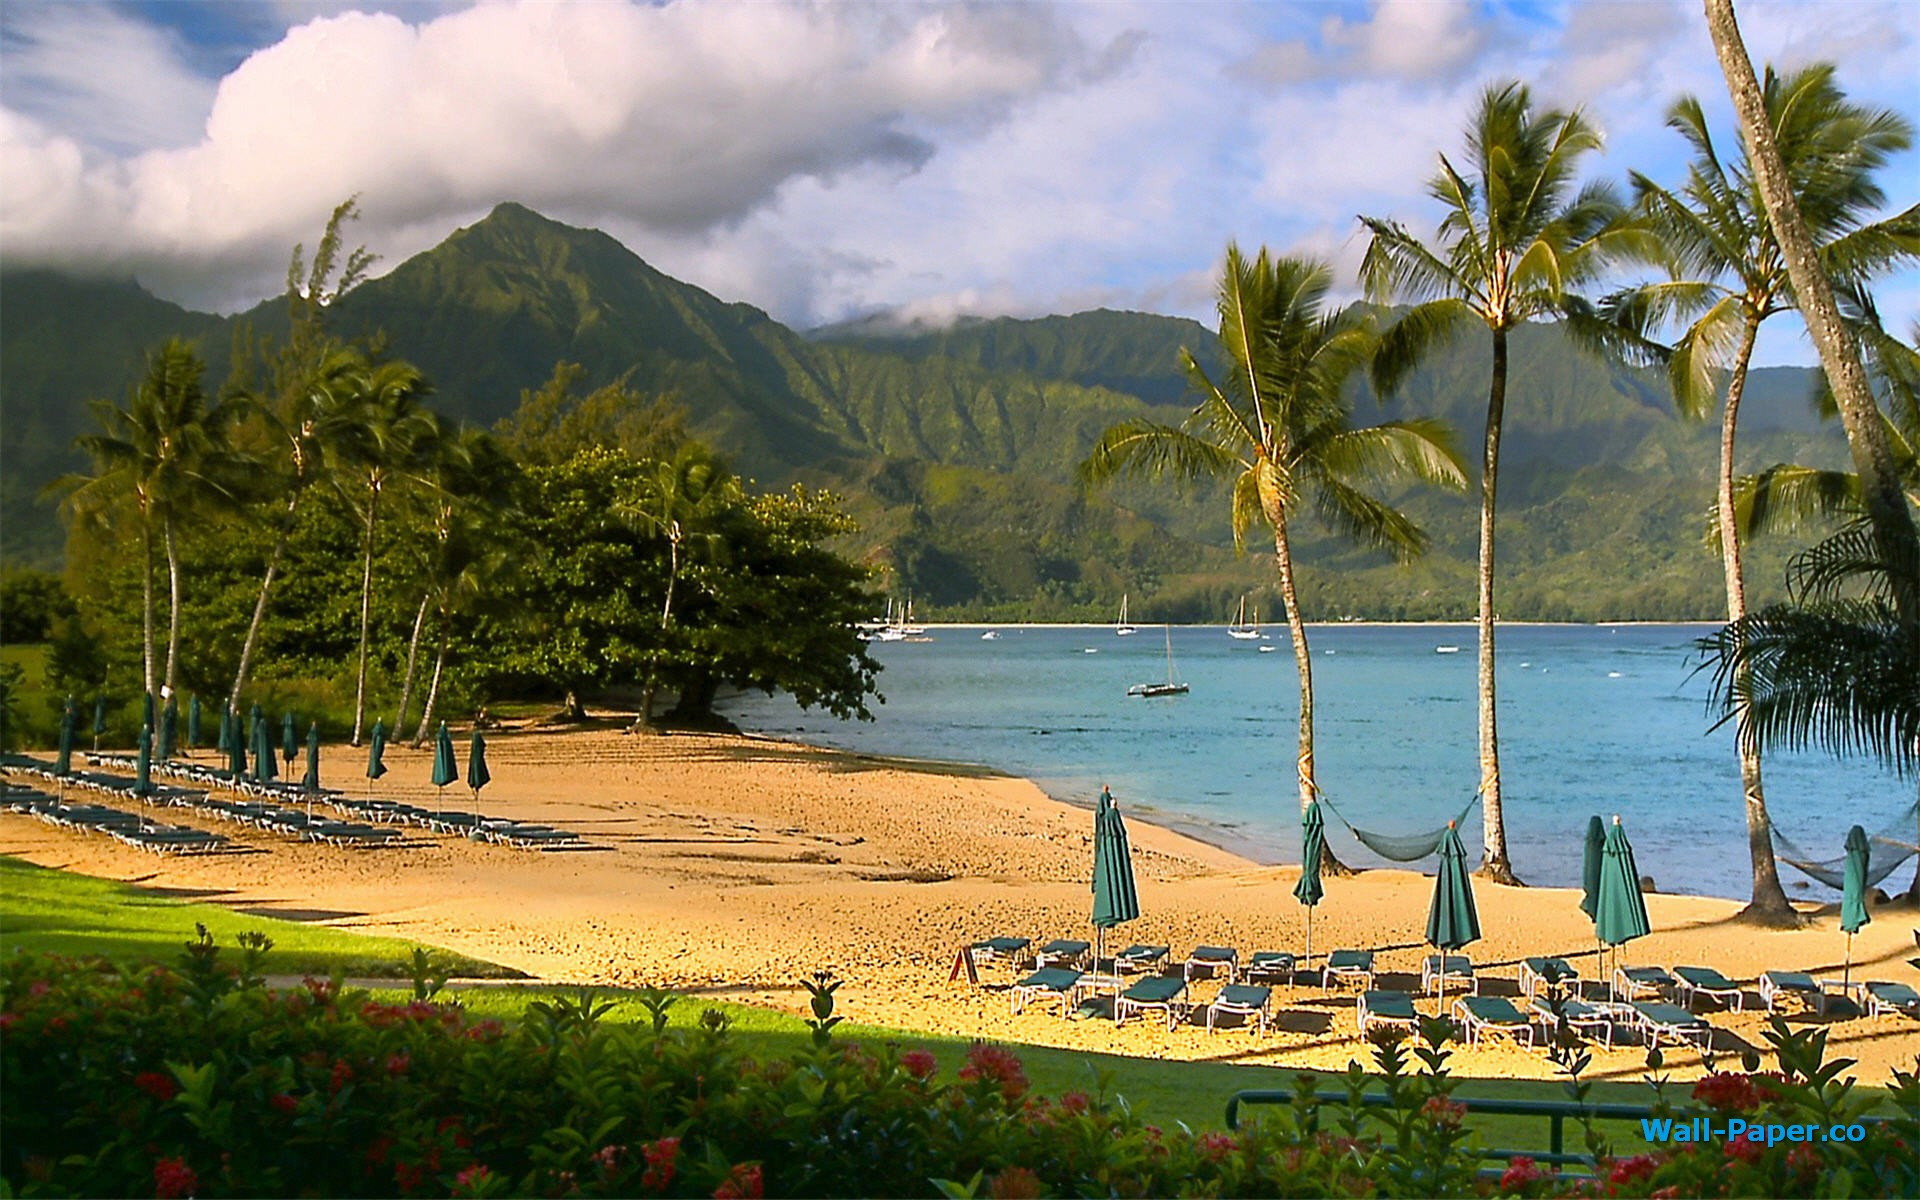 Hawaii Wallpapers, Pictures, Images Counter Strike Wallpaper Hd